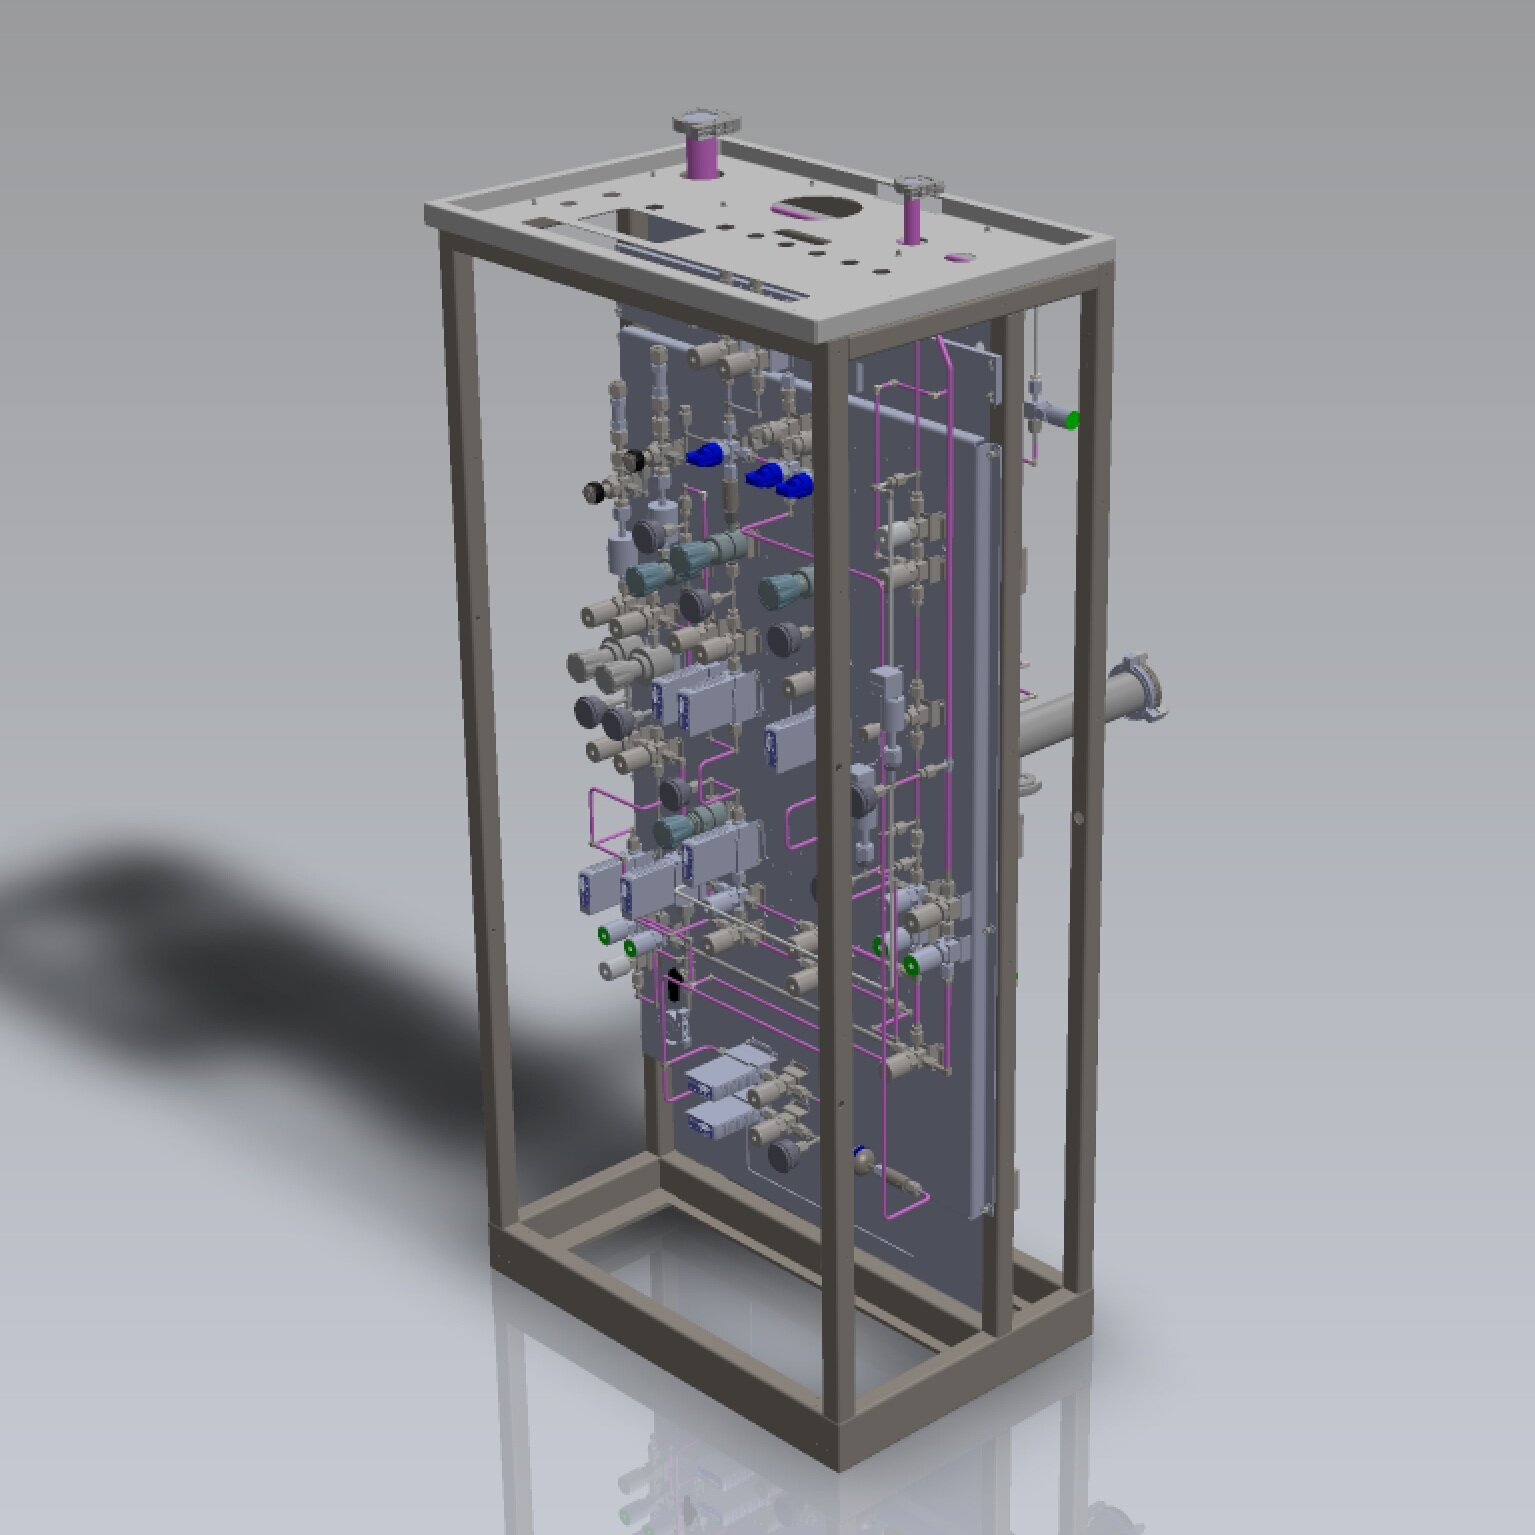 CAD Designed Gas Panels - •Computer Designed•Completely Replaces existing panel•ROI Effective solution to old panels•Fully Customizable